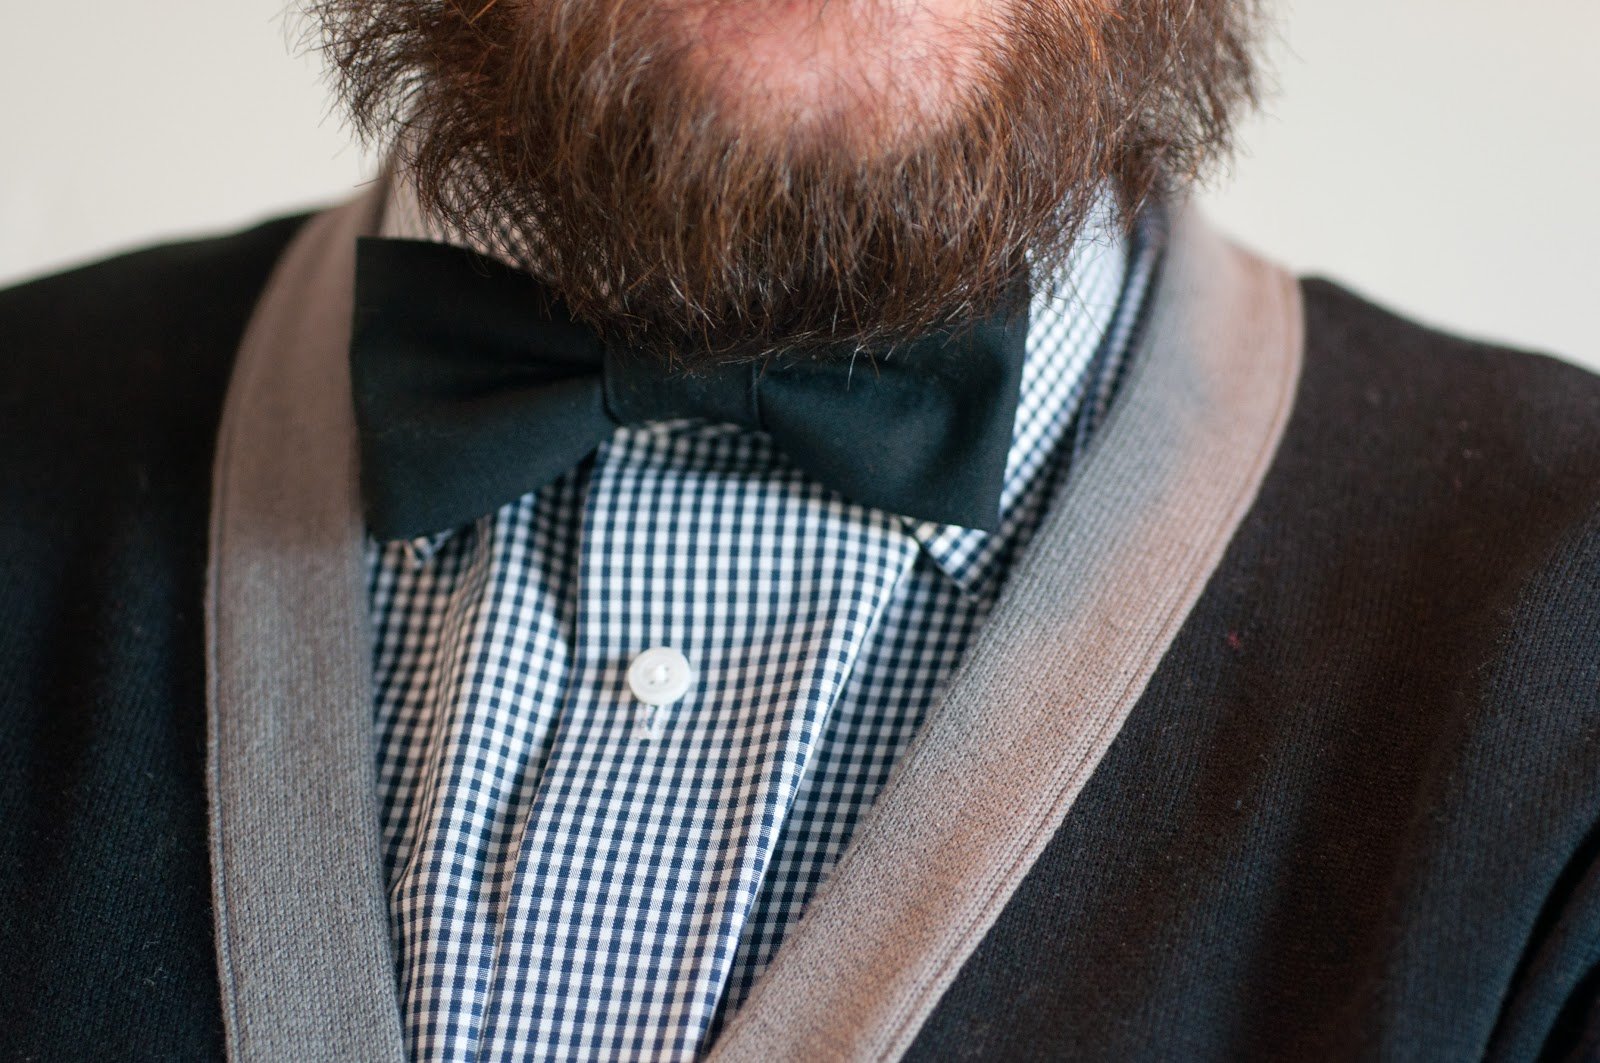 bow tie, black bow tie, black bowtie, kelsey bang bow tie, beard, mens style, handsome man, handsome guy, plaid shirt, nordstrom, nordstrom shirts, plaid shirt, black and white, 2 tone cardigan, gray and black cardigan, ryan renoylds, urban outfitters, ryan renoyolds look alike, mens profile, mans beard, big beard, mens style, fashion, mens wear,